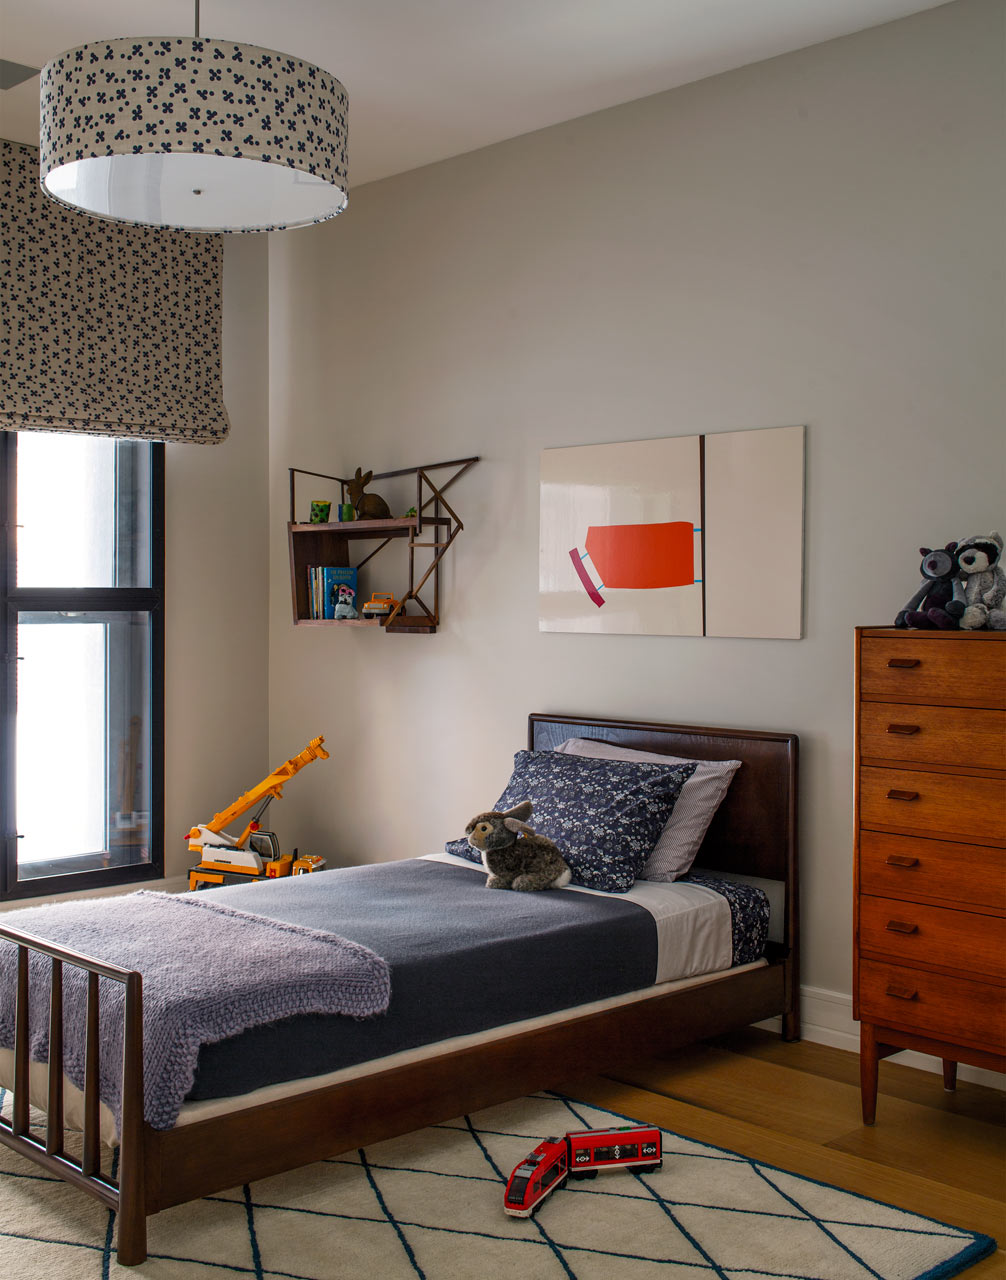 66-9th-Ave-EcoFriendly-Apt-12-boy-room